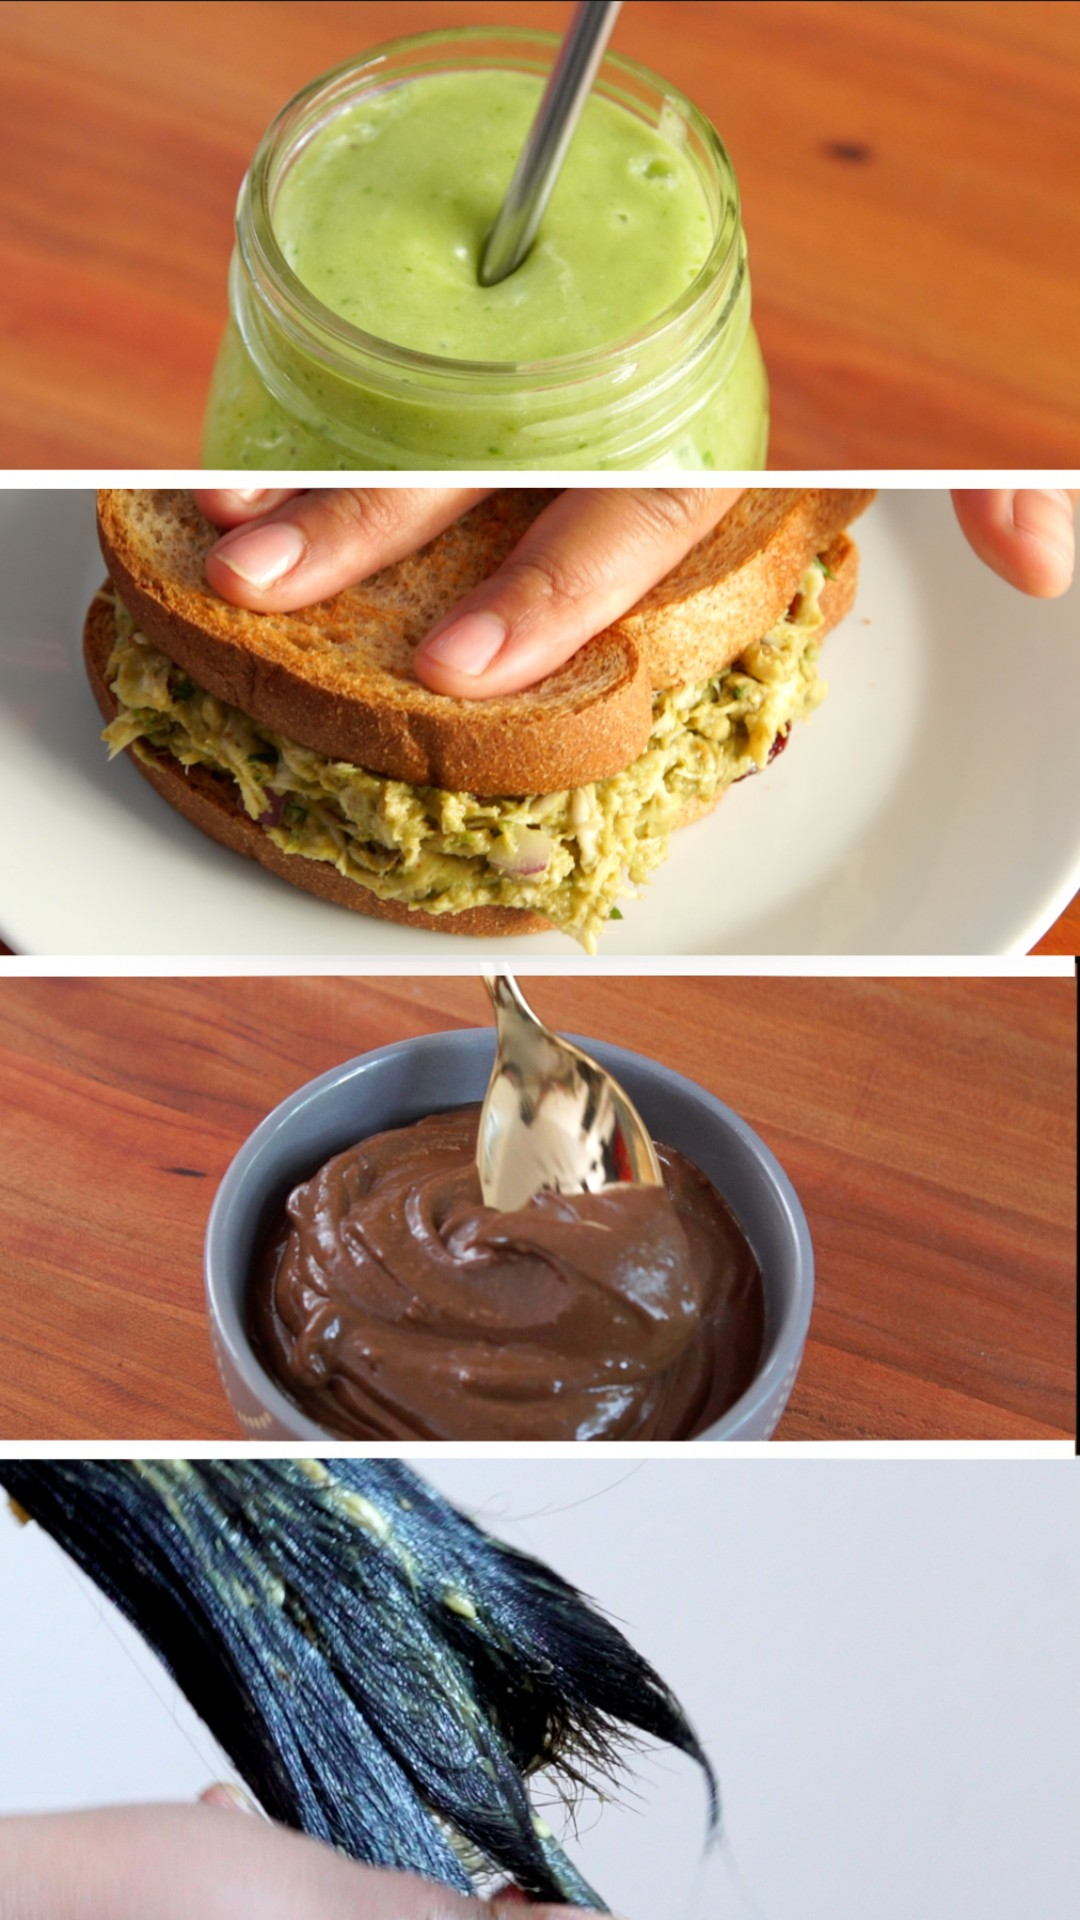 4 Uses For Overripe Avocados